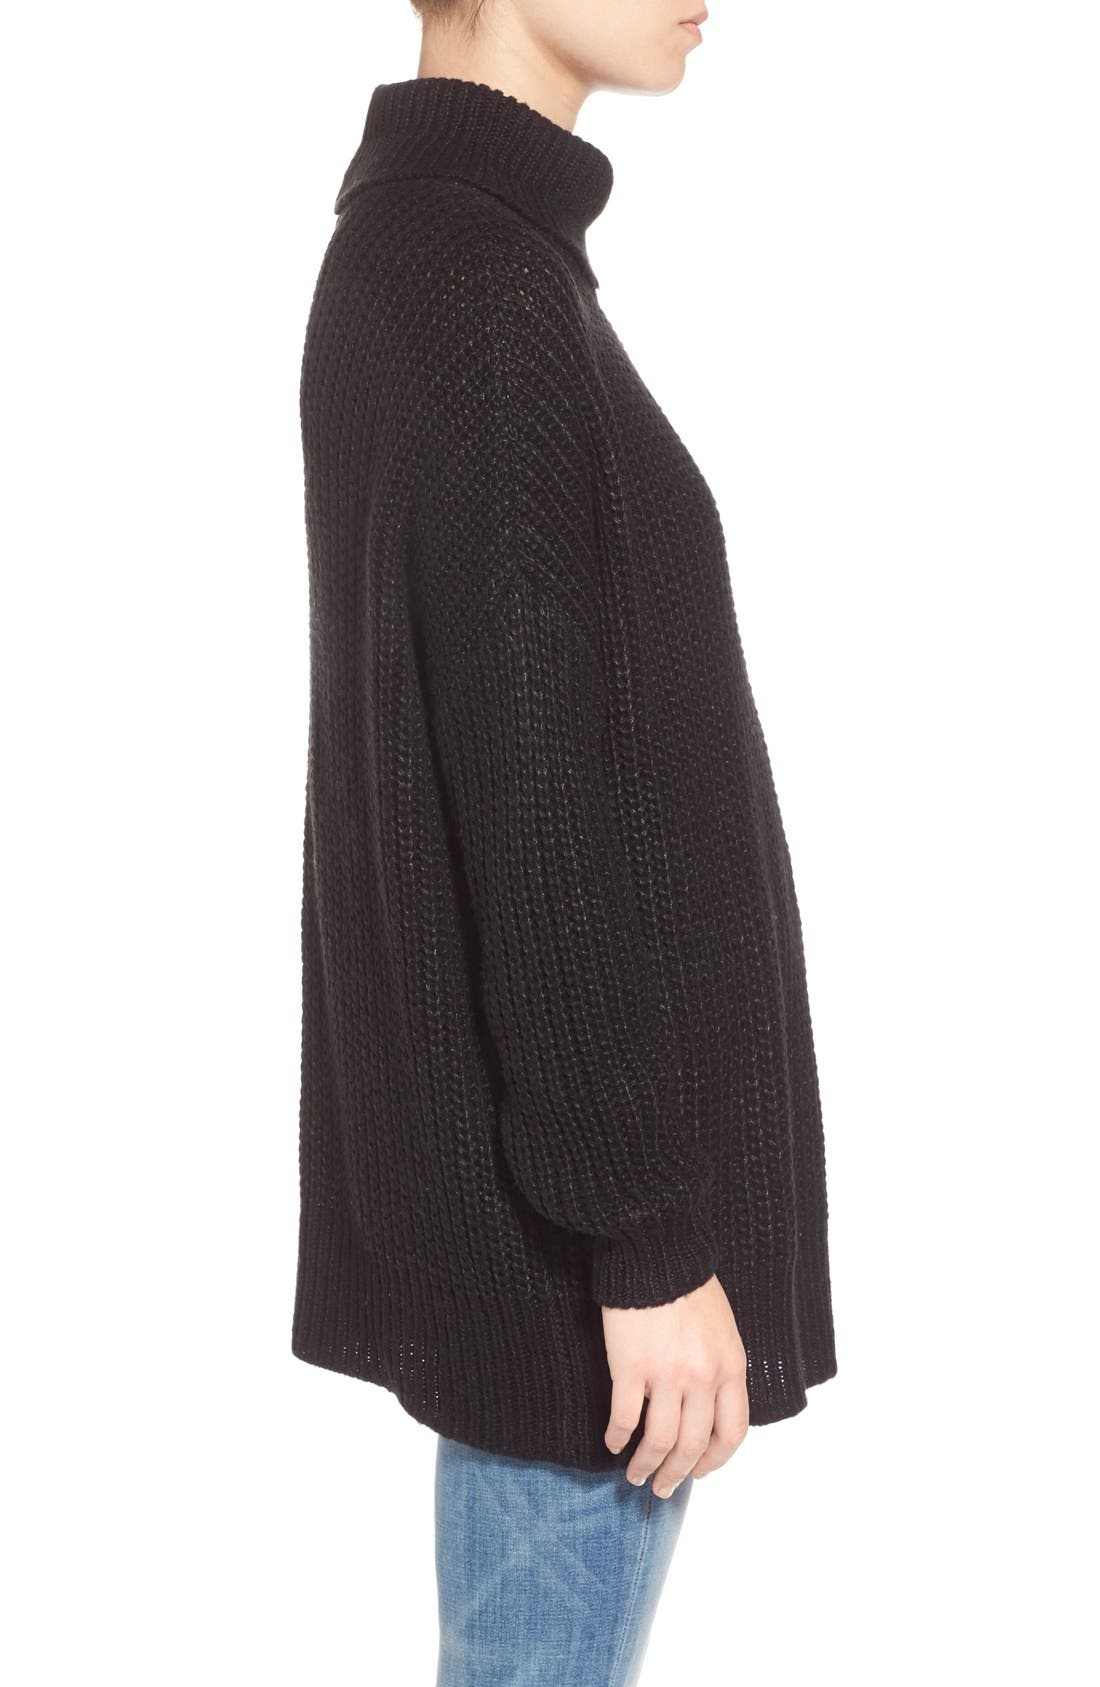 LEITH, Oversize Turtleneck Sweater, Alternate thumbnail 2, color, 001